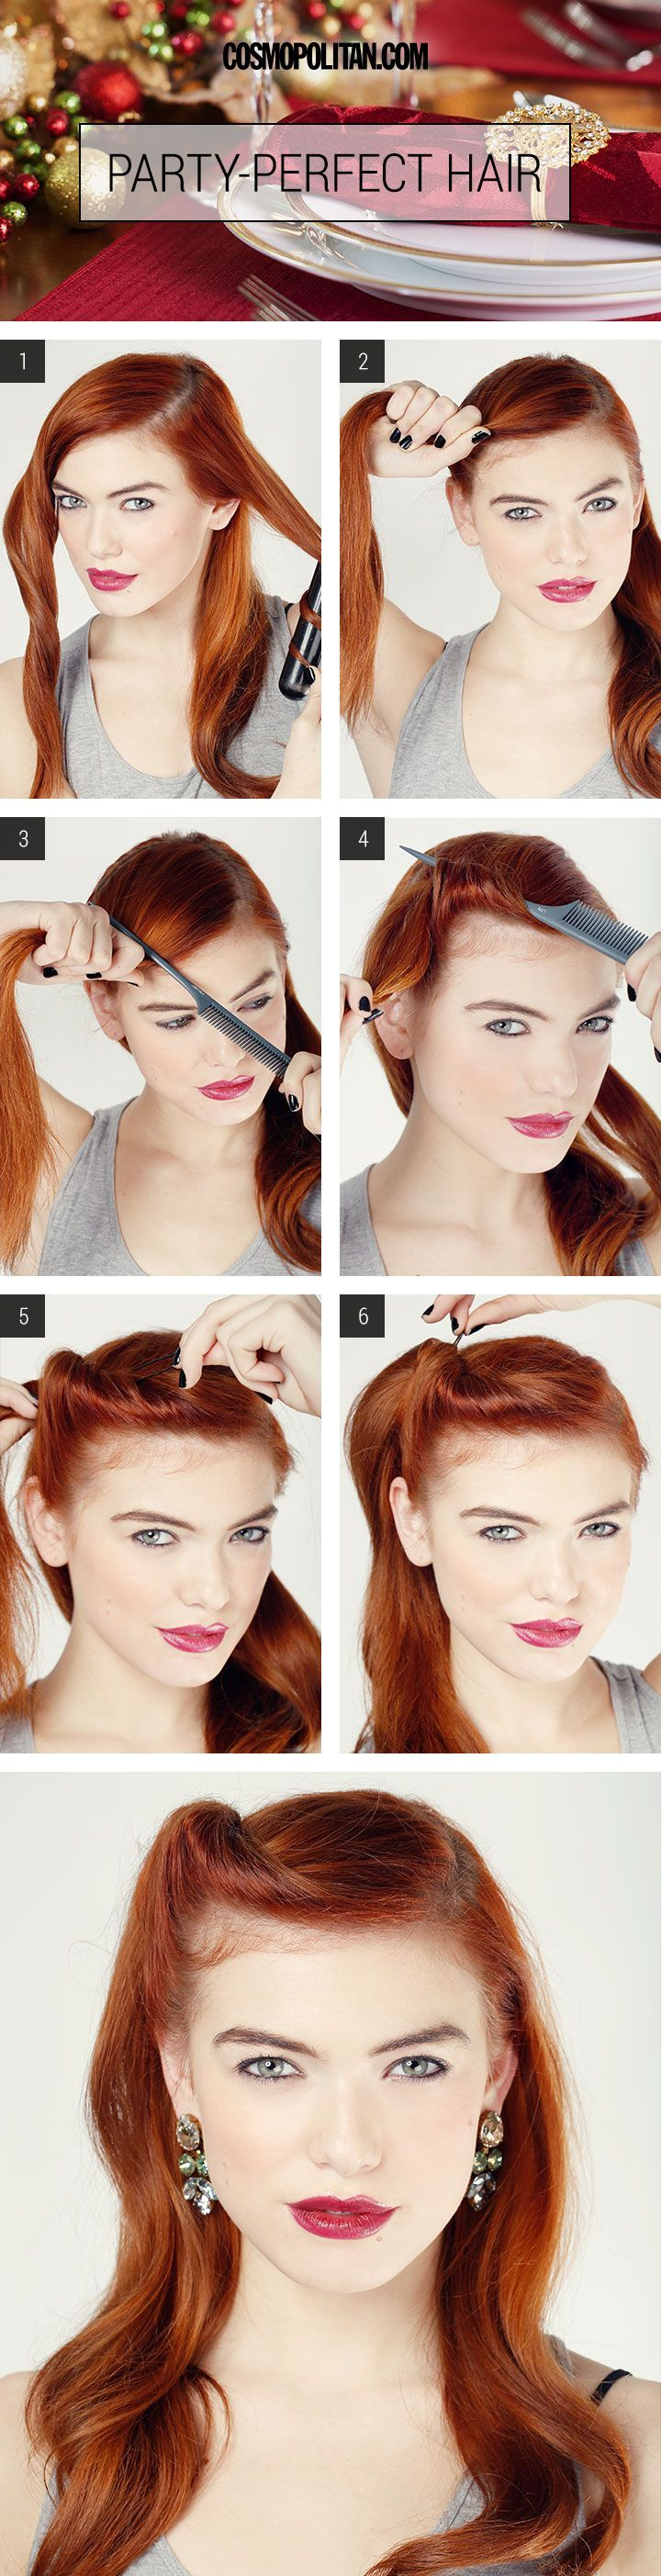 Hair Tutorial - Party Perfect Hair